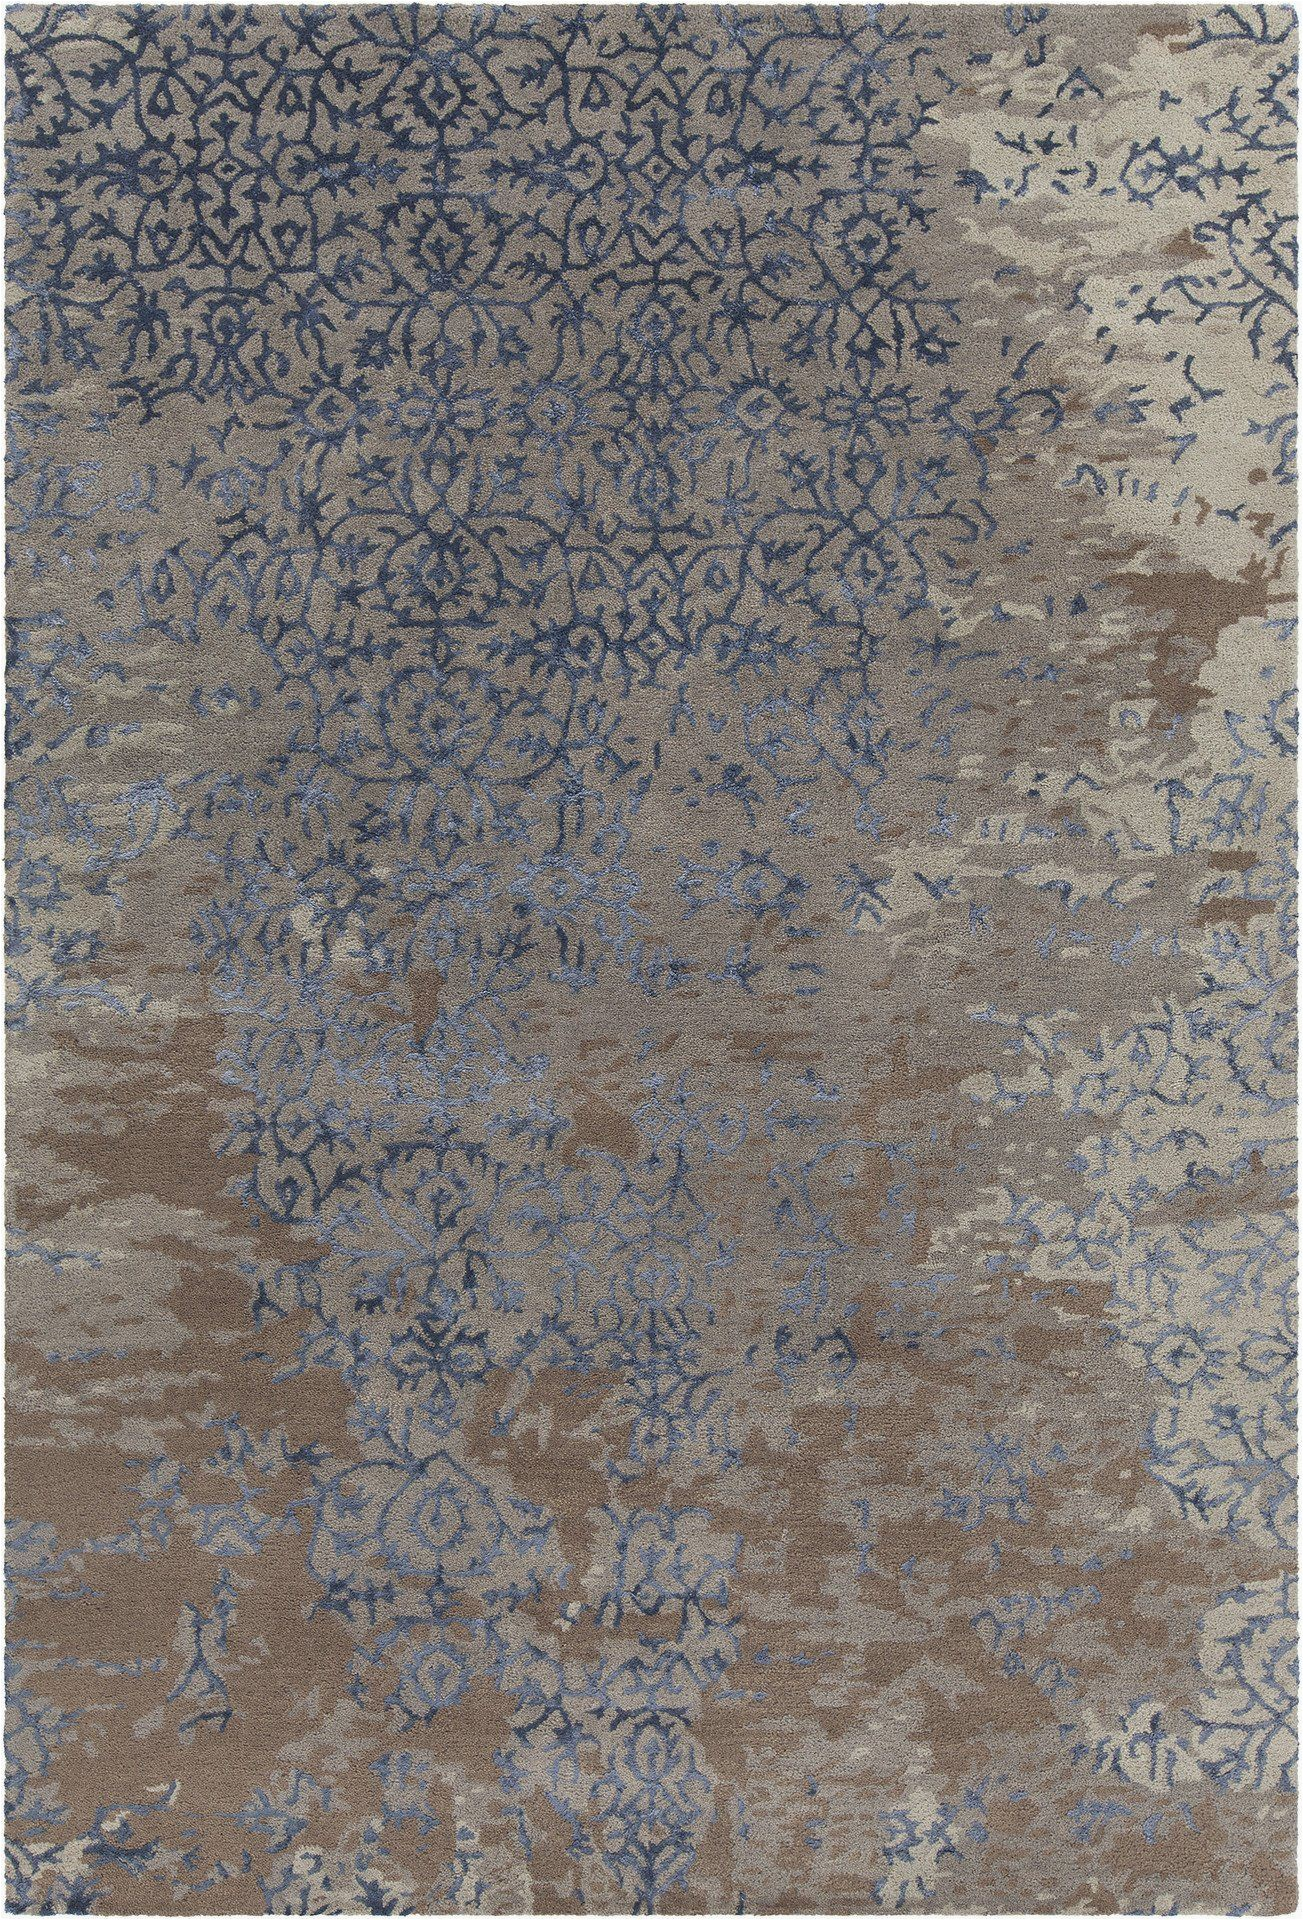 Blue Gray and Brown area Rug Rupec Collection Hand Tufted area Rug In Grey Blue & Brown